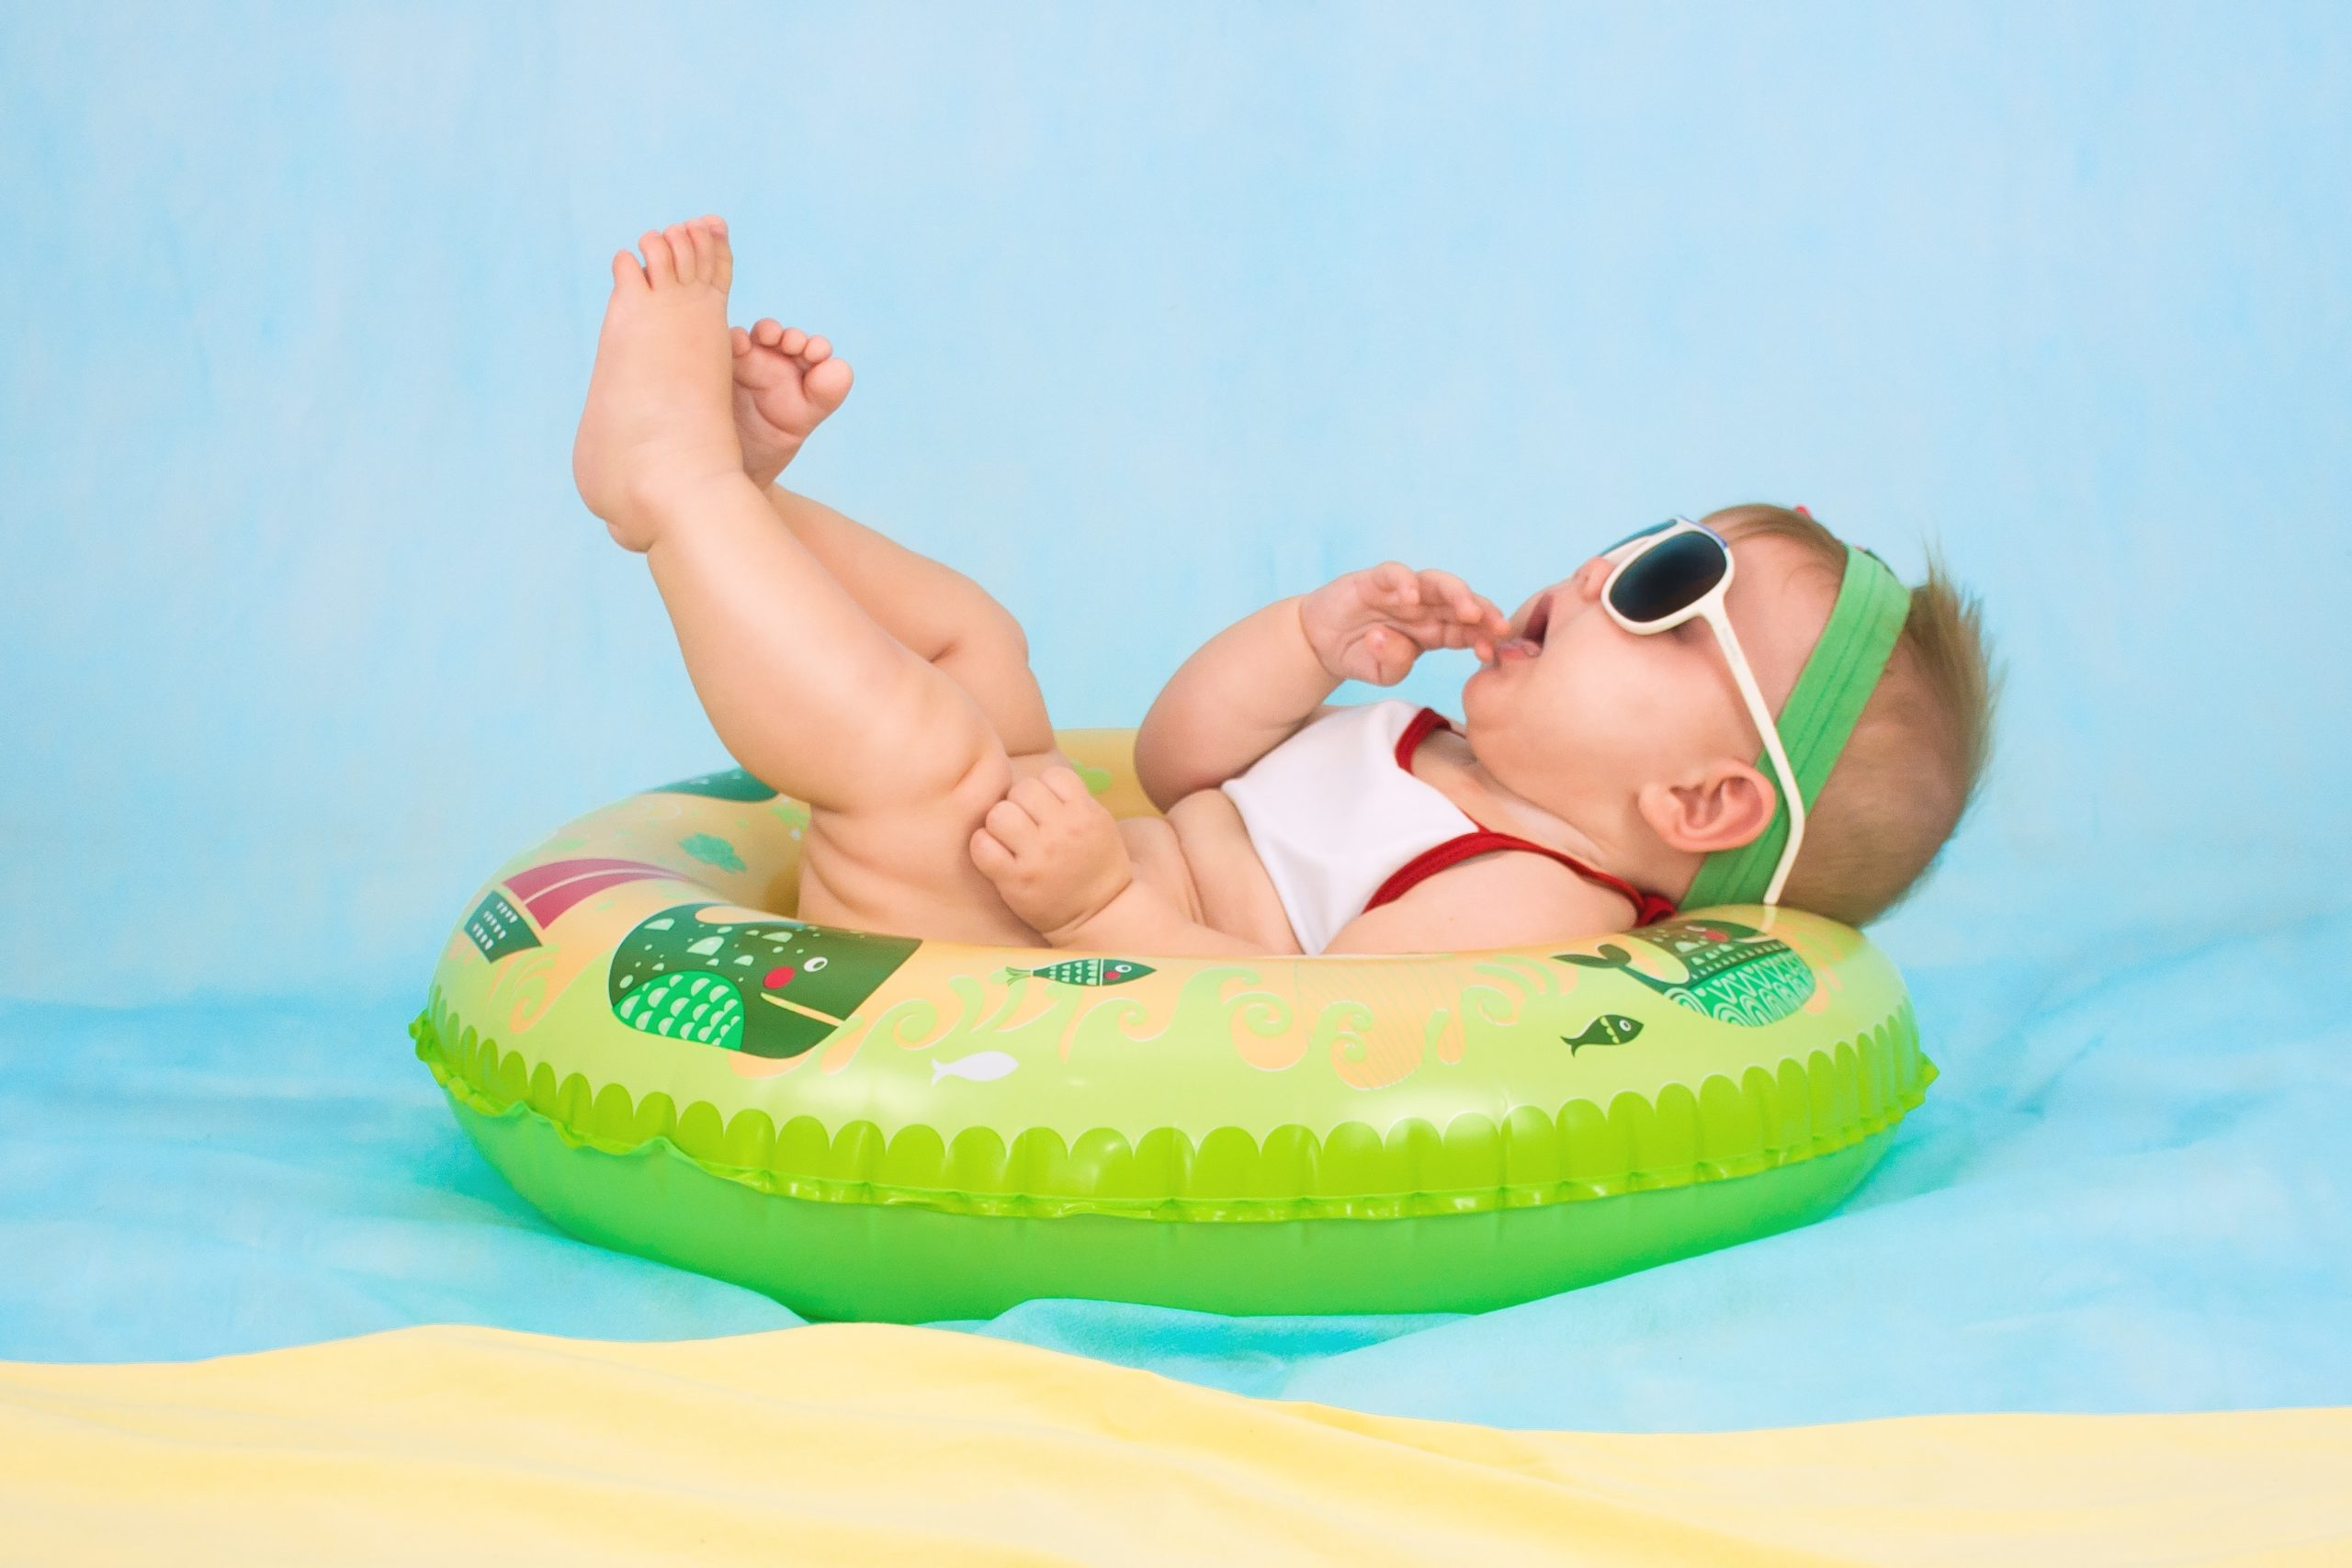 Newborn Baby Gifts Suggestions For Baby